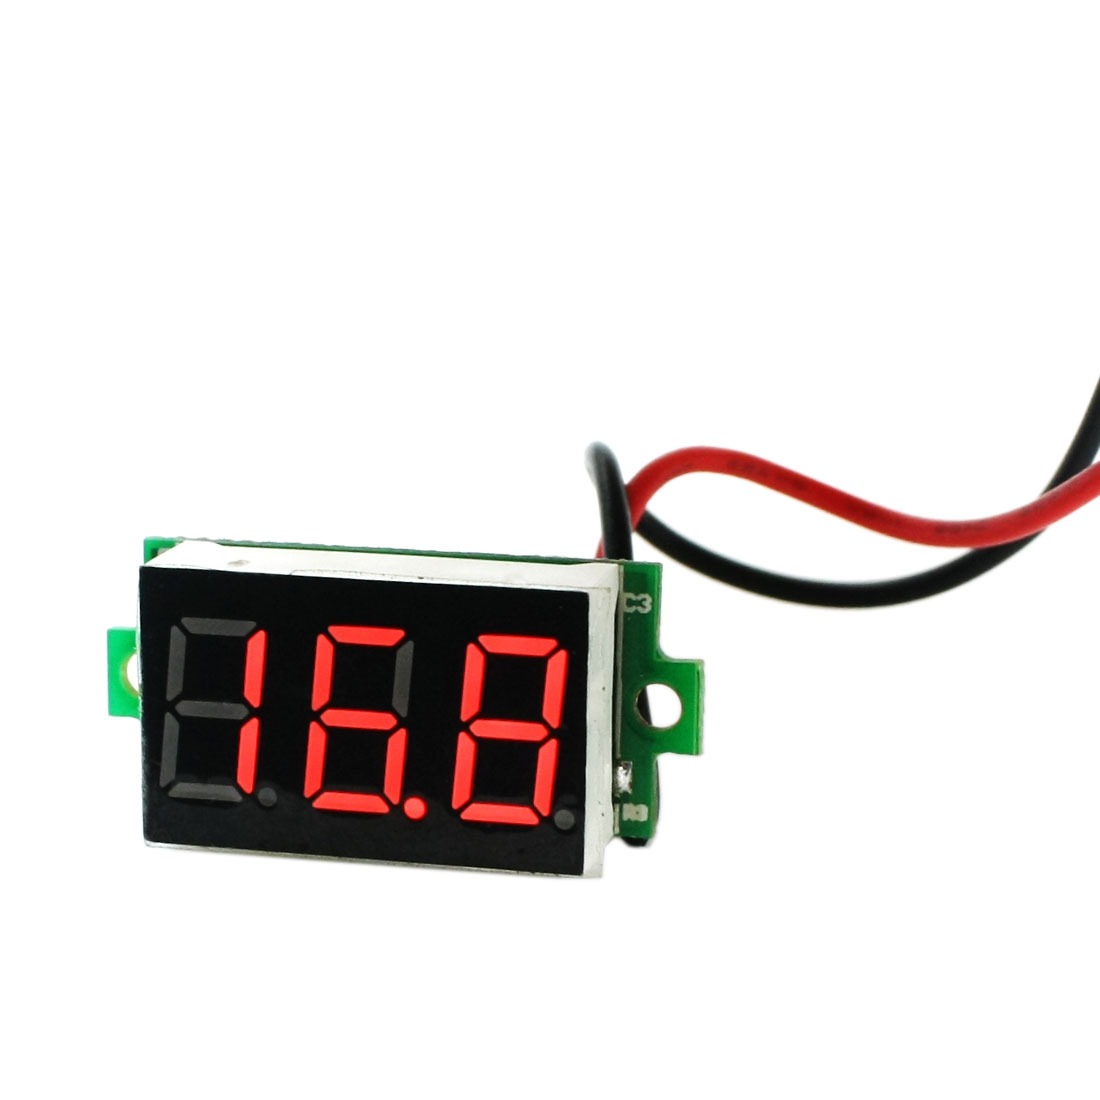 DC 3.2-30V 15cm 2 Wire 3 Digits Red LED 2mm Mounting Hole Dia Voltmeter Battery Car Voltage Monitor